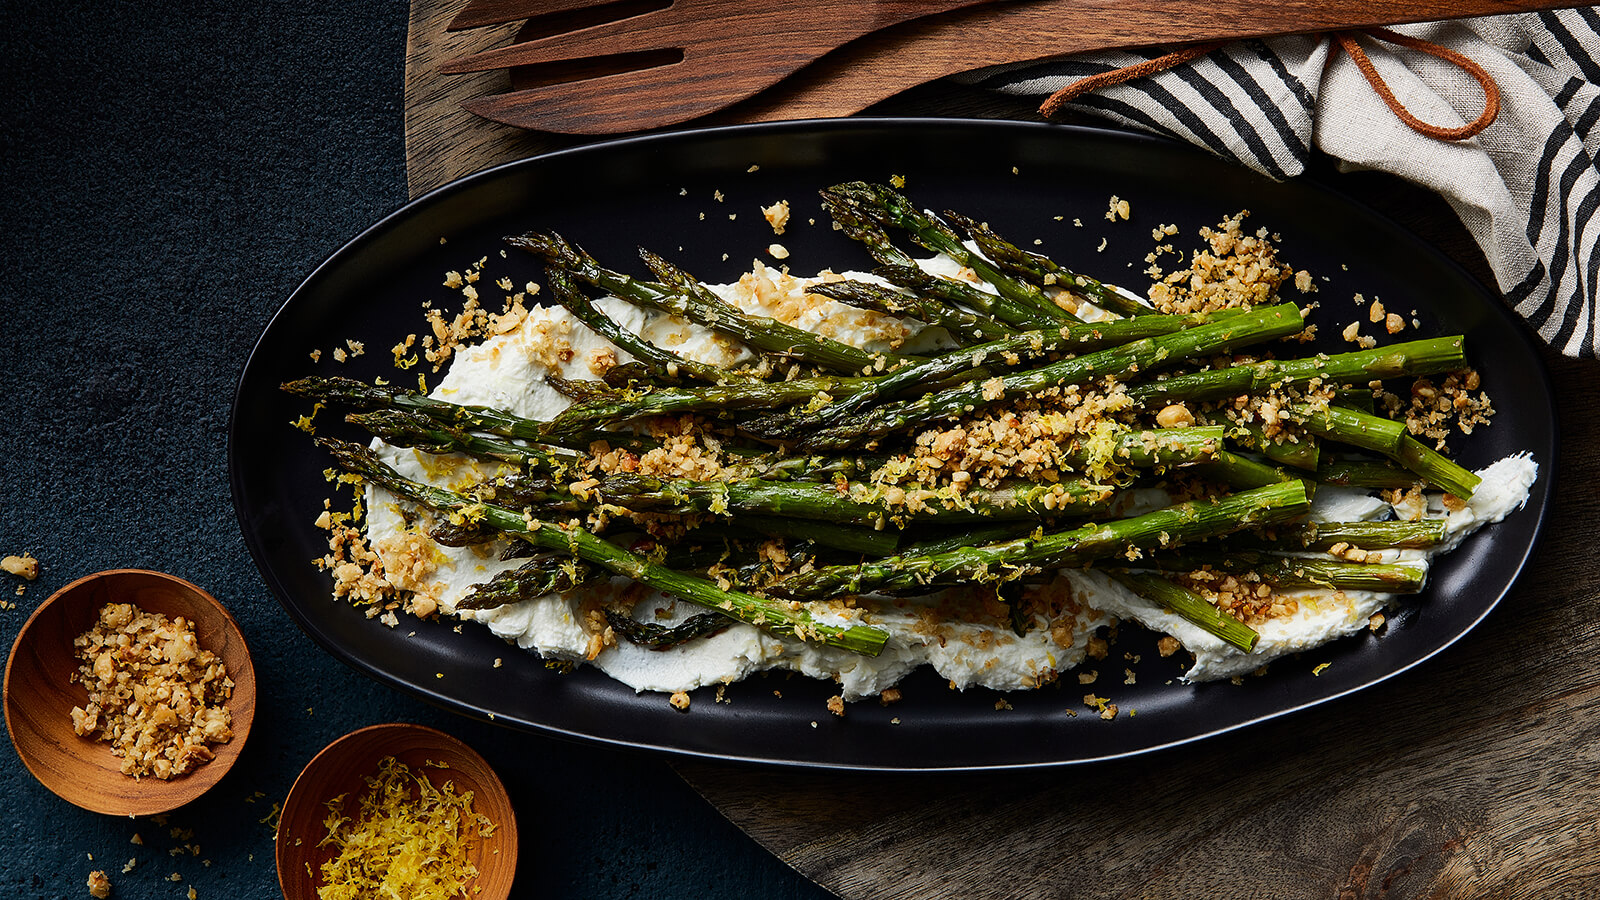 Roasted Asparagus with Goat Cheese and Hazelnuts